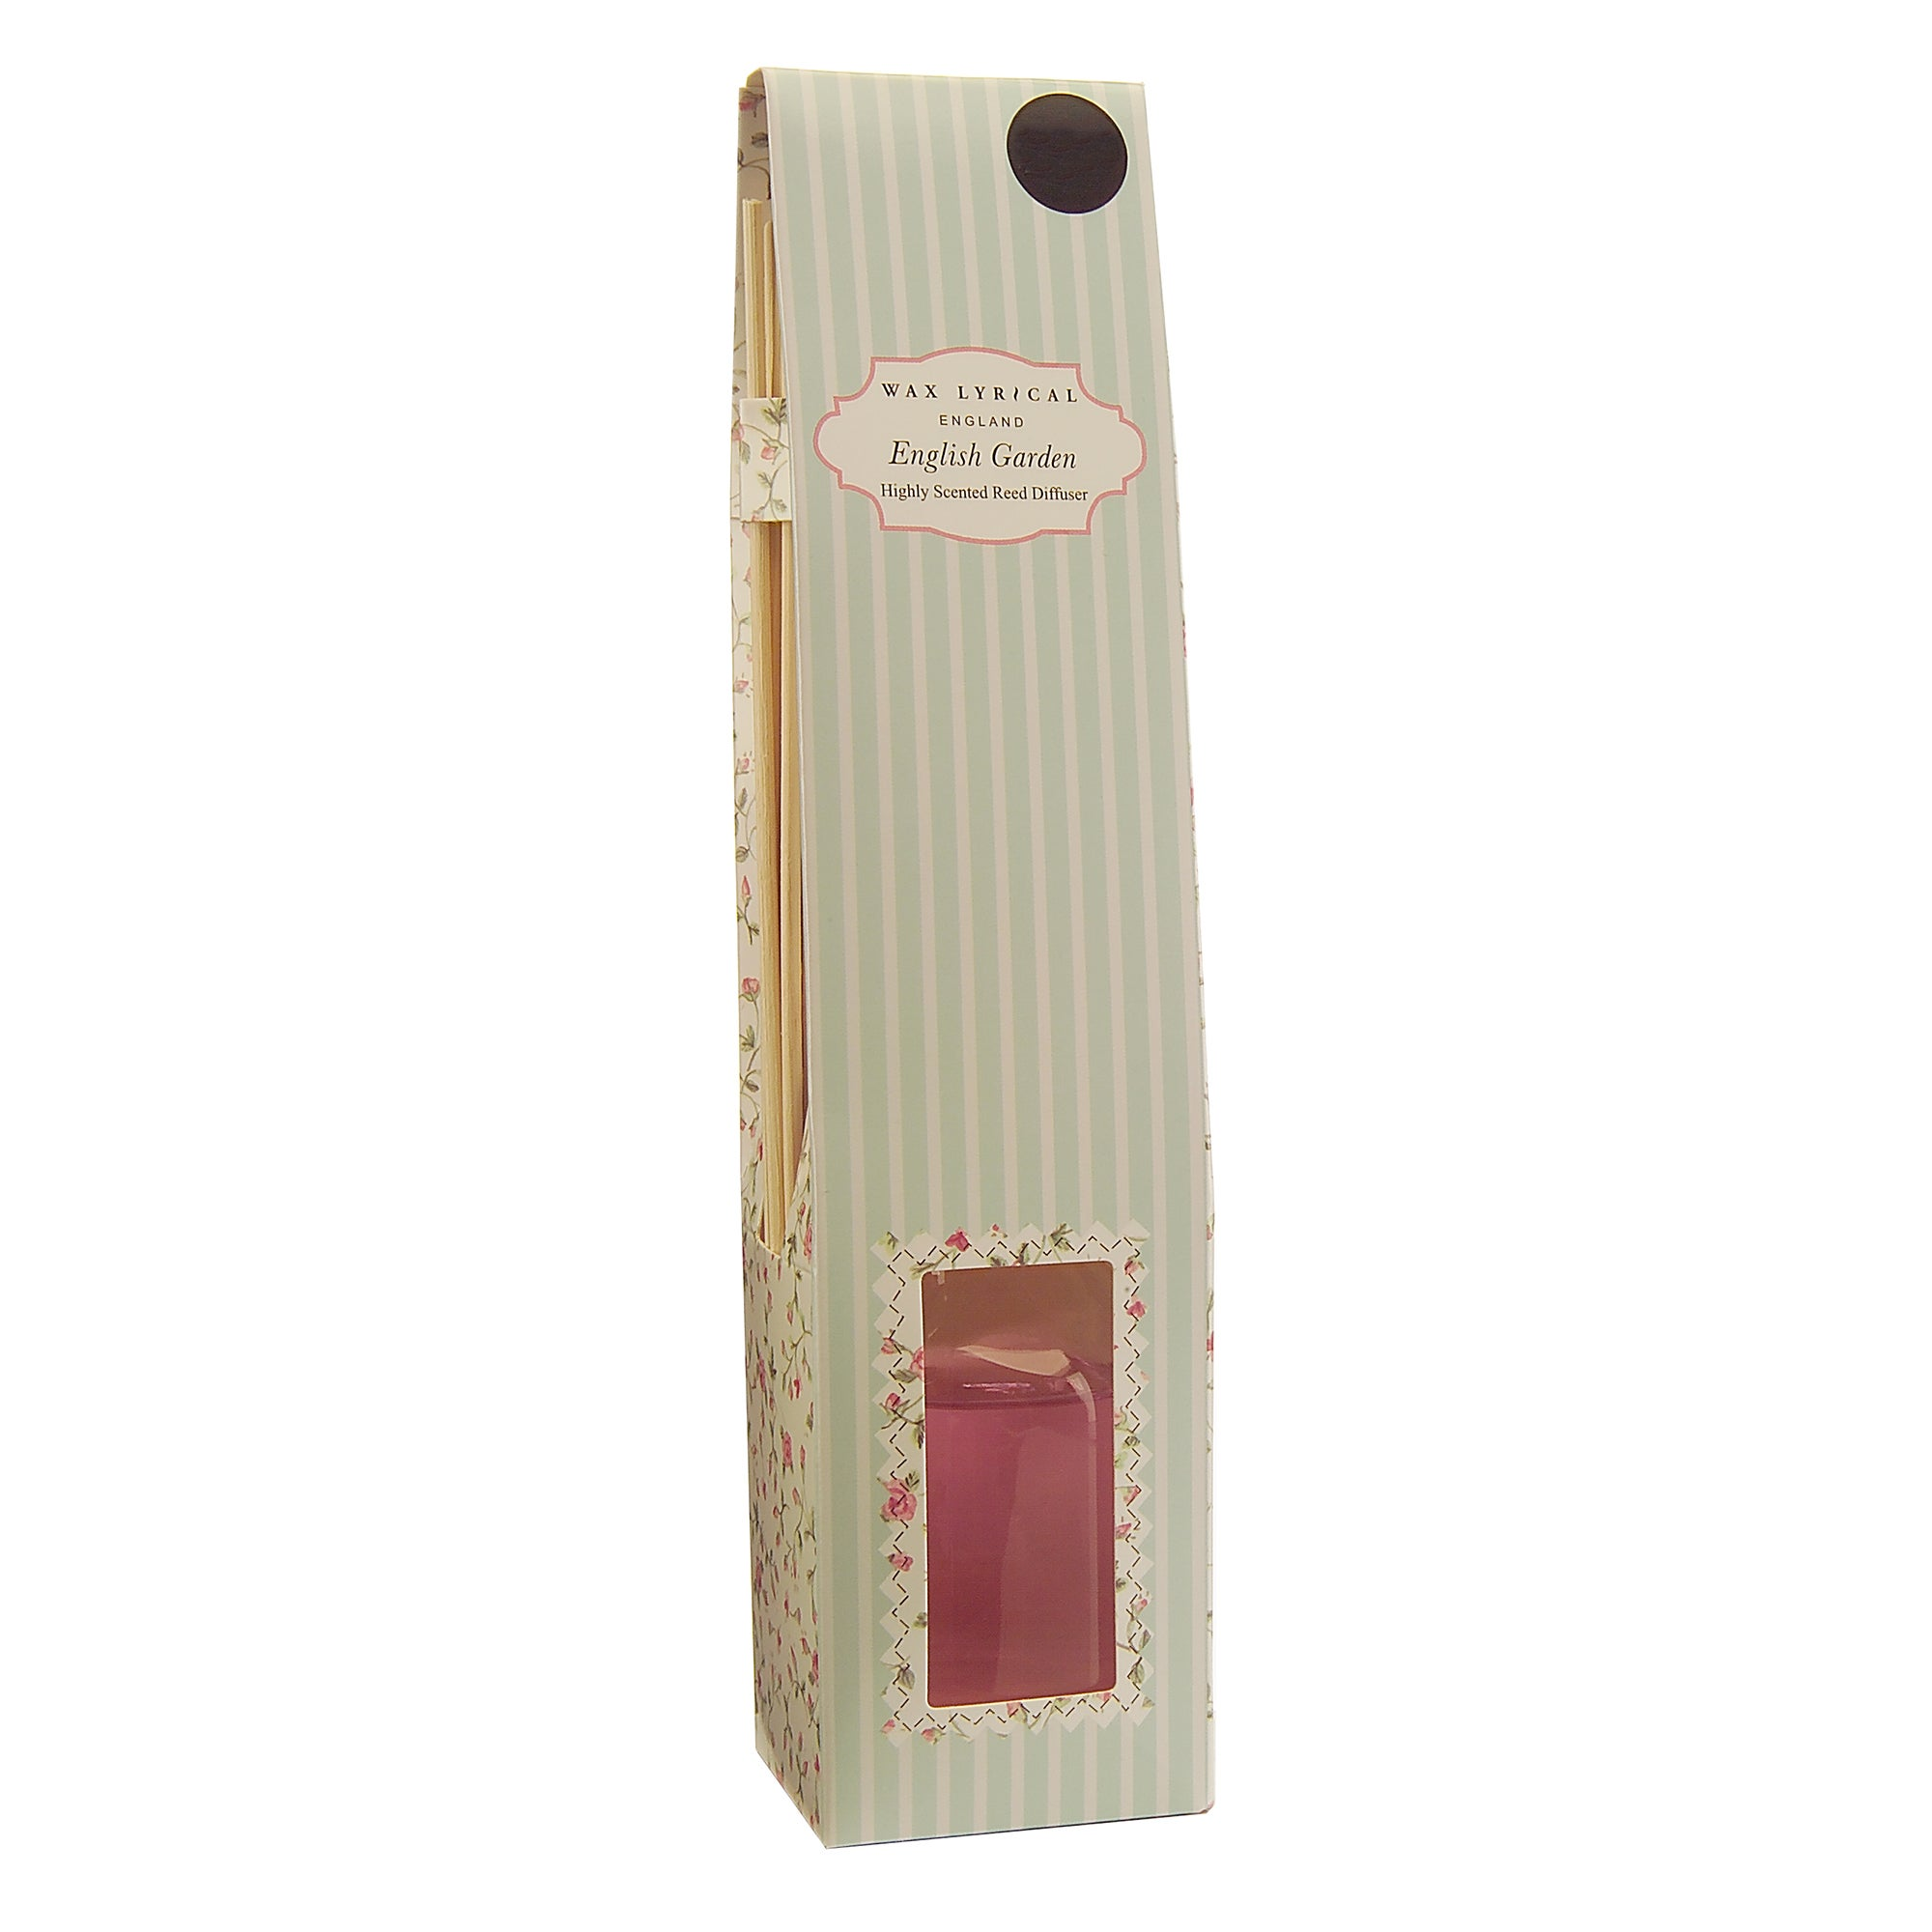 Wax Lyrical English Garden 100ml Reed Diffuser